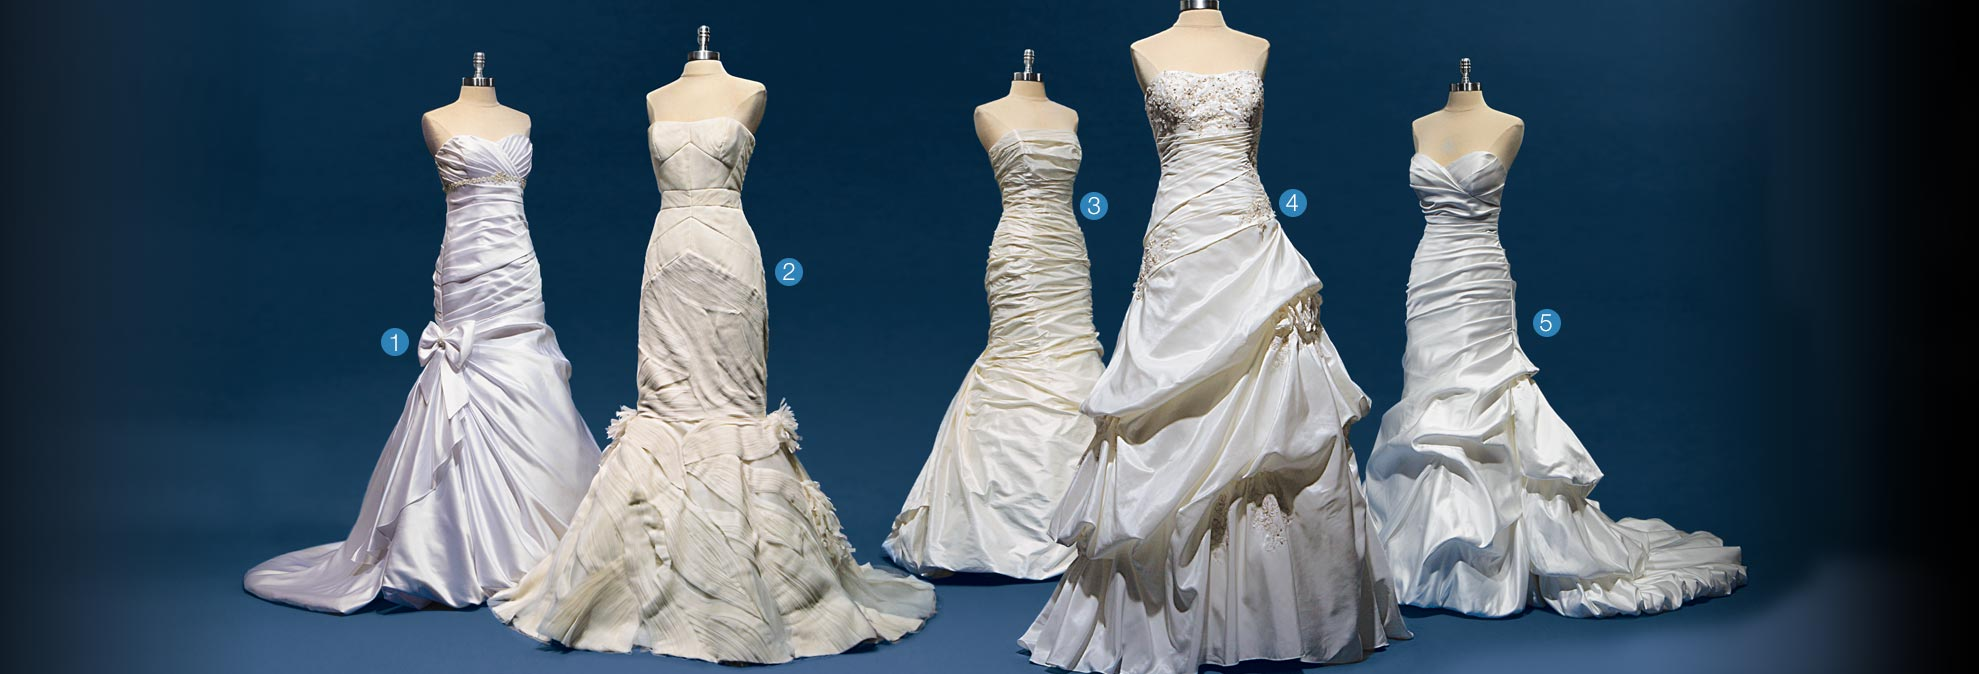 Can You Spot the $10,000 Wedding Gown? - Consumer Reports